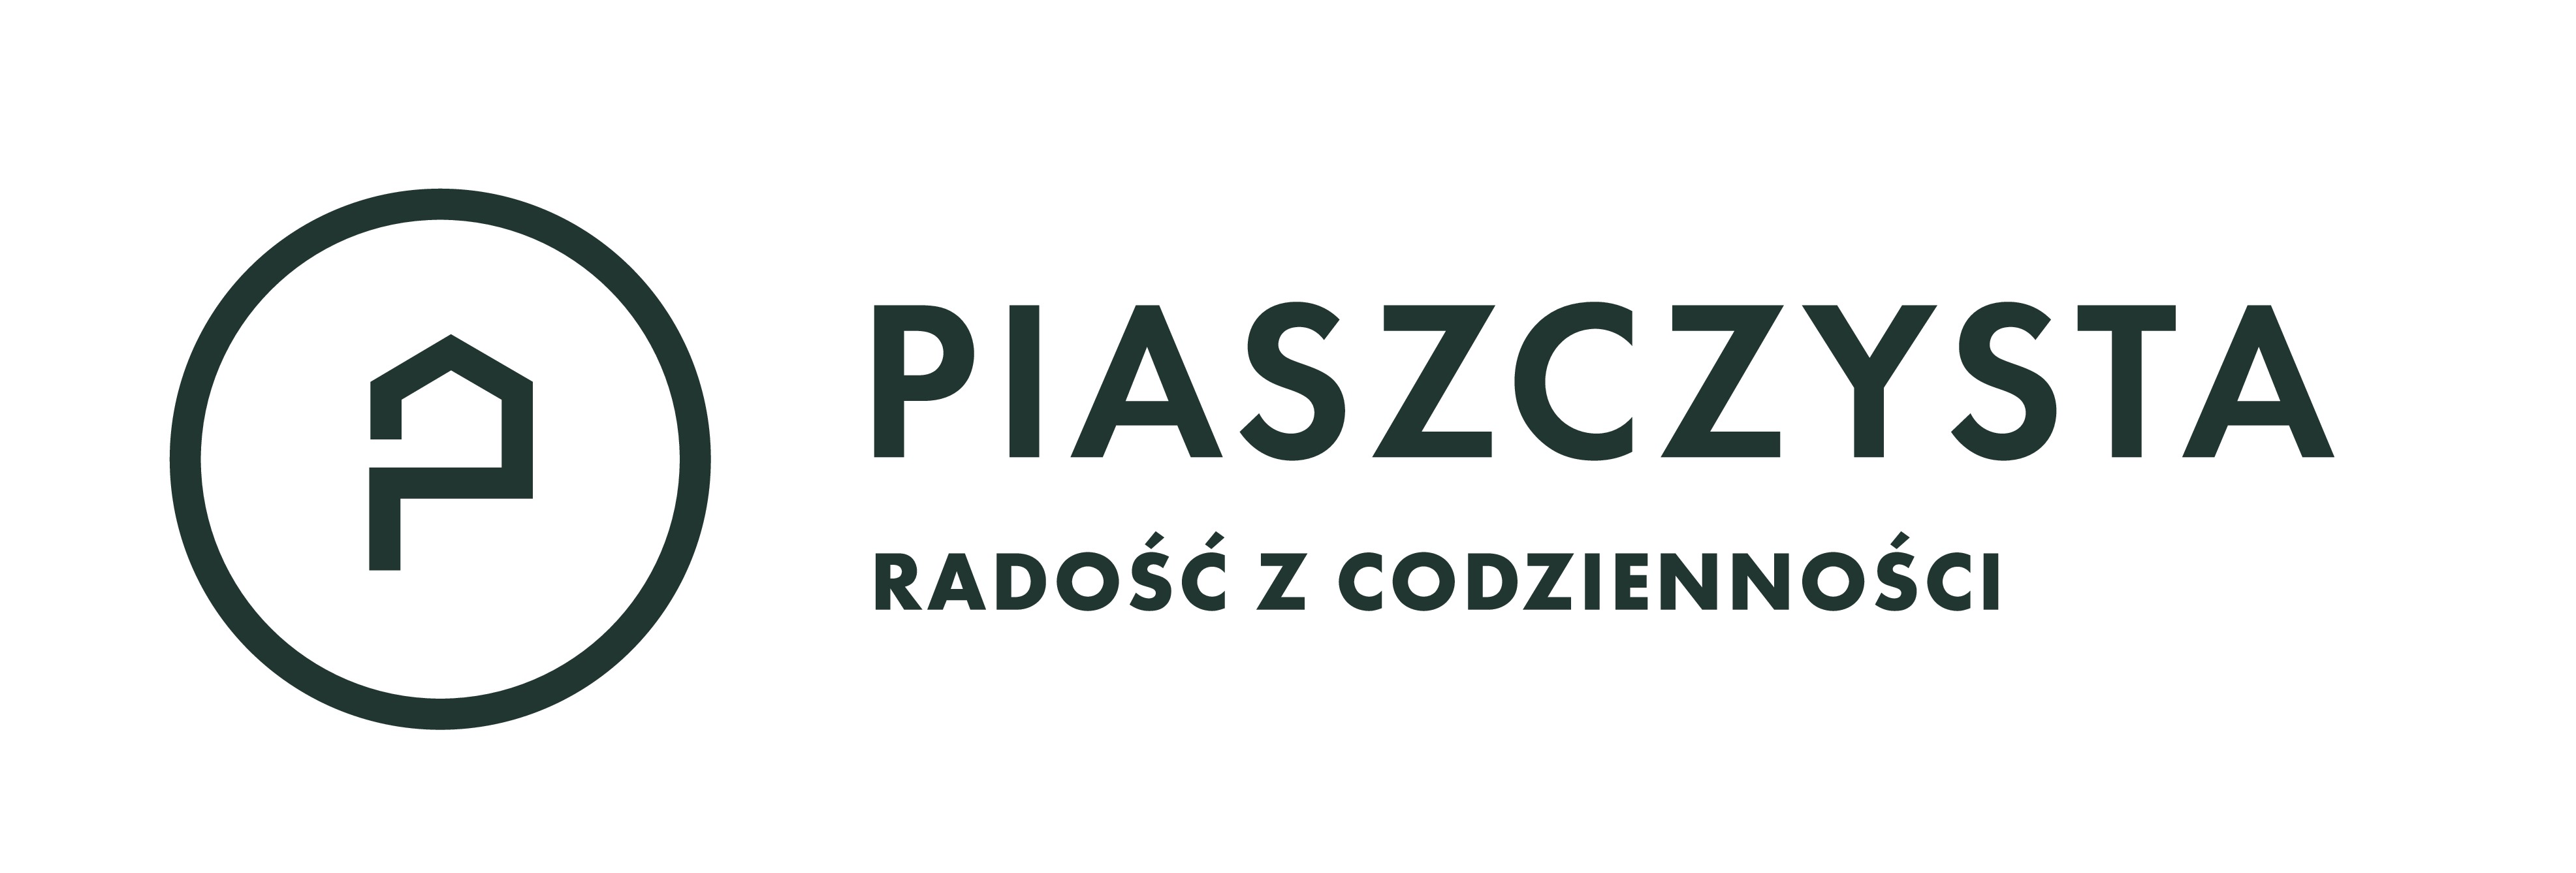 PIASZCZYSTA is a new, unique investment that consists of eight aesthetically and functionally designed houses, divided into apartments of various sizes.